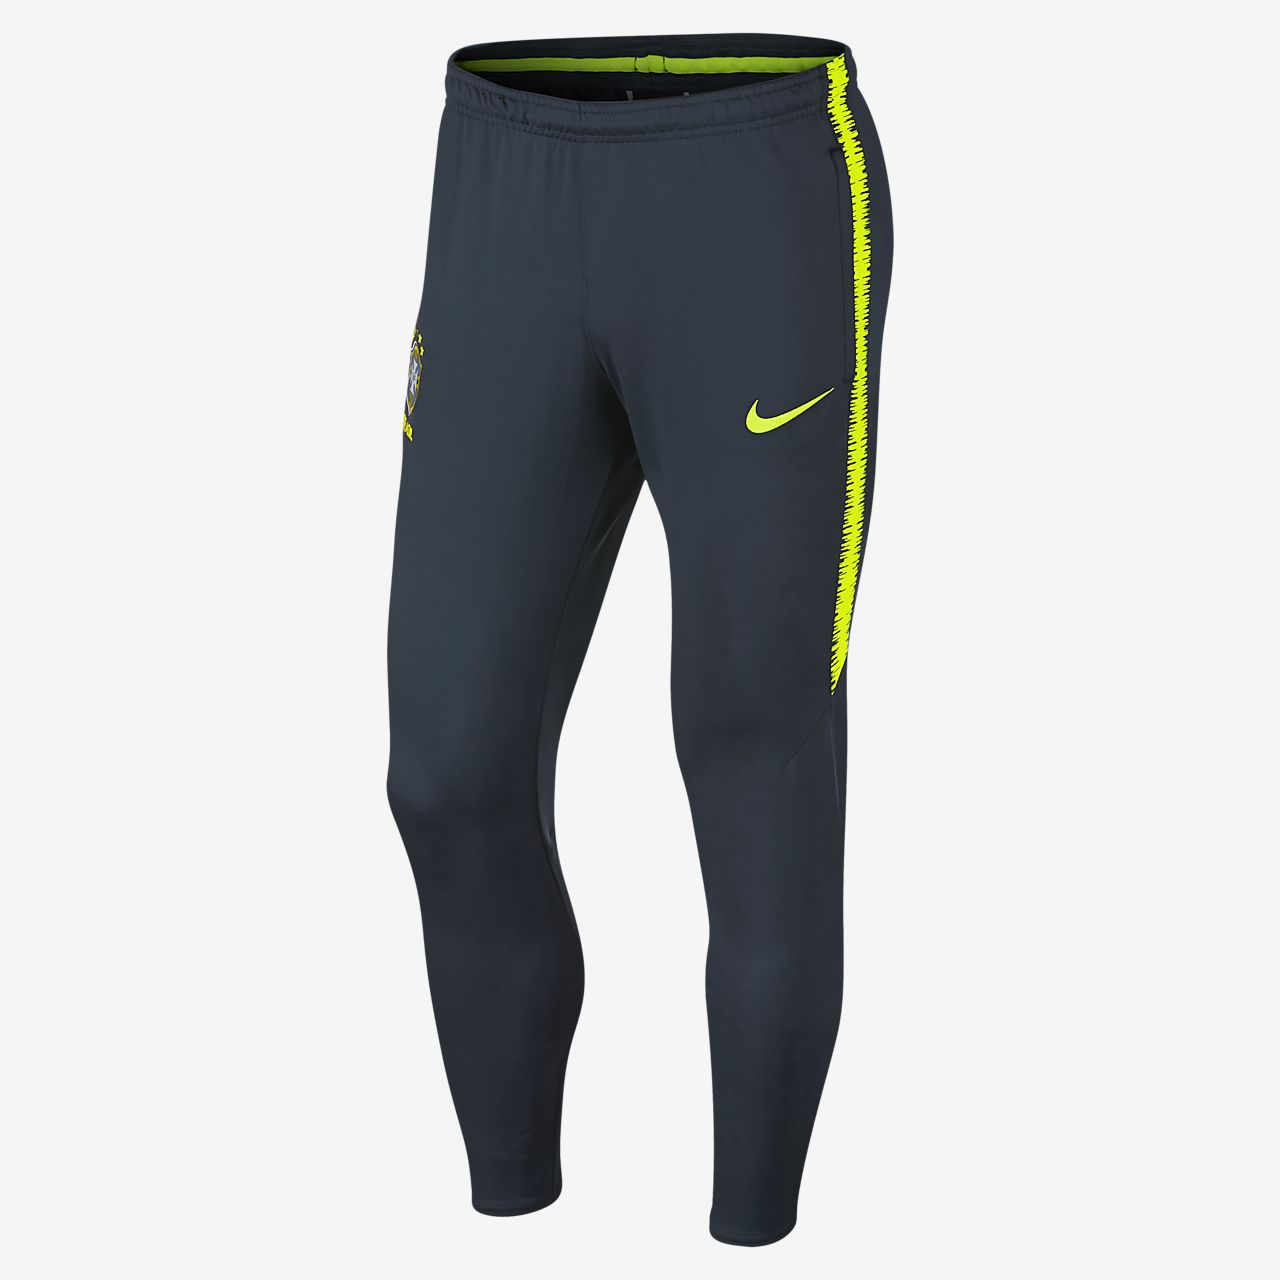 597f82c28 Brazil CBF Dri-FIT Squad Men's Football Pants. Nike.com NZ